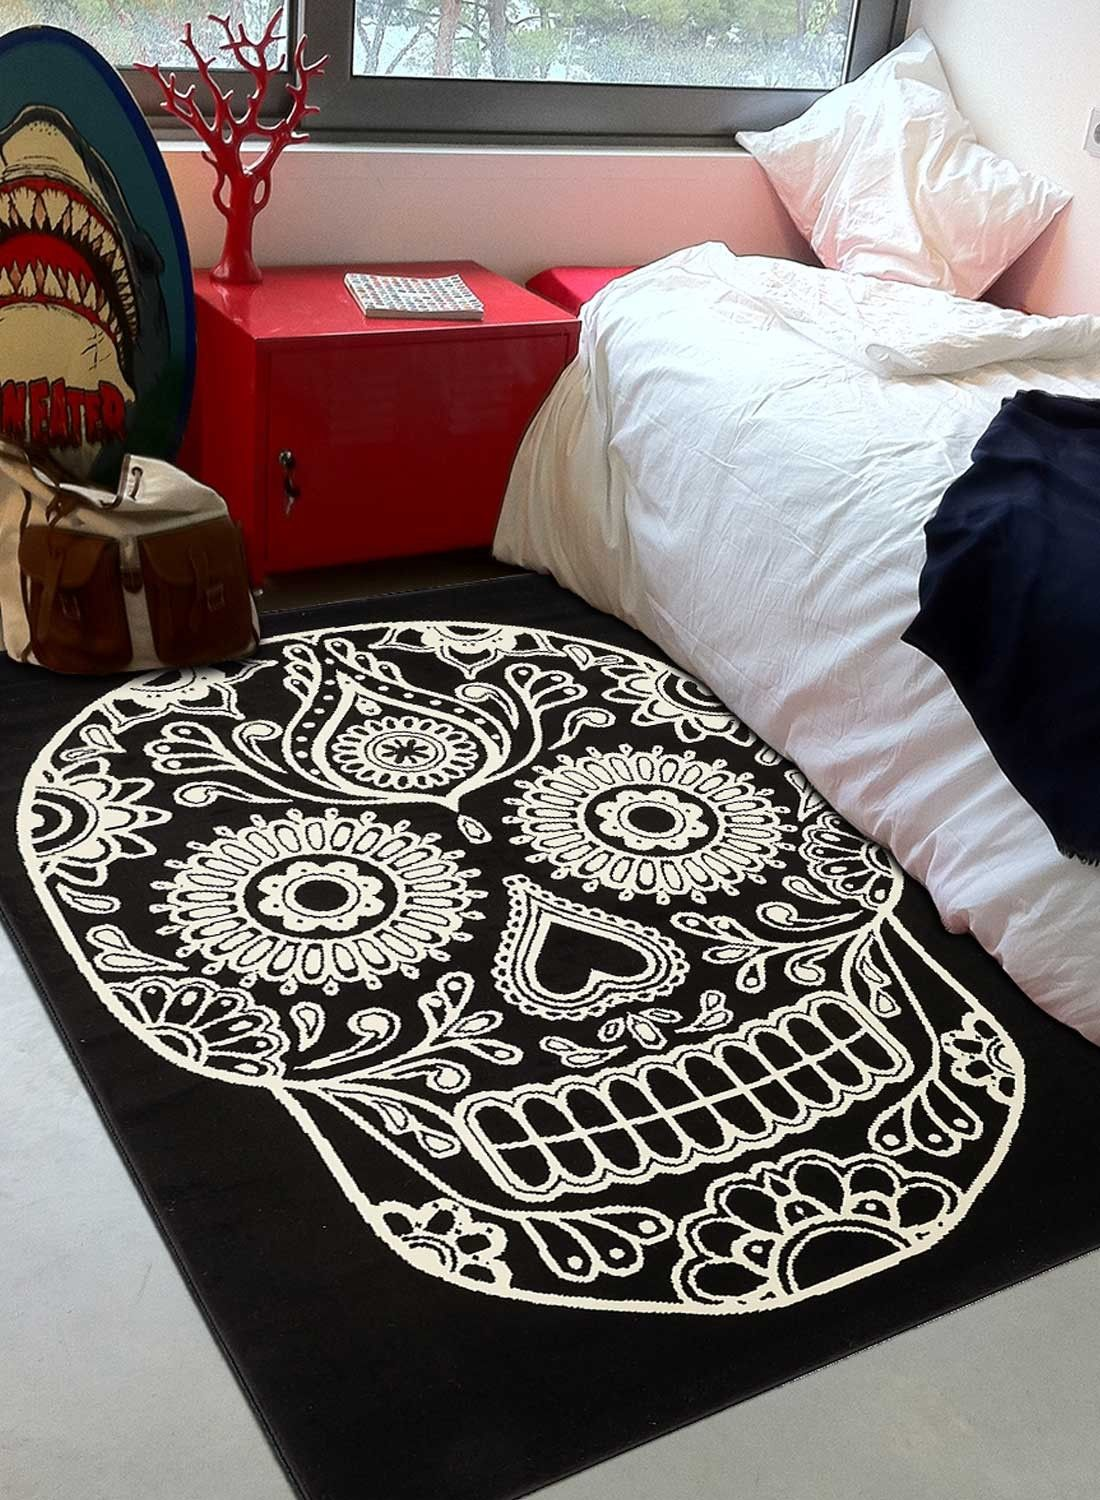 Bc mexican skull  Tapis chambre, Tapis enfant, Deco chambre